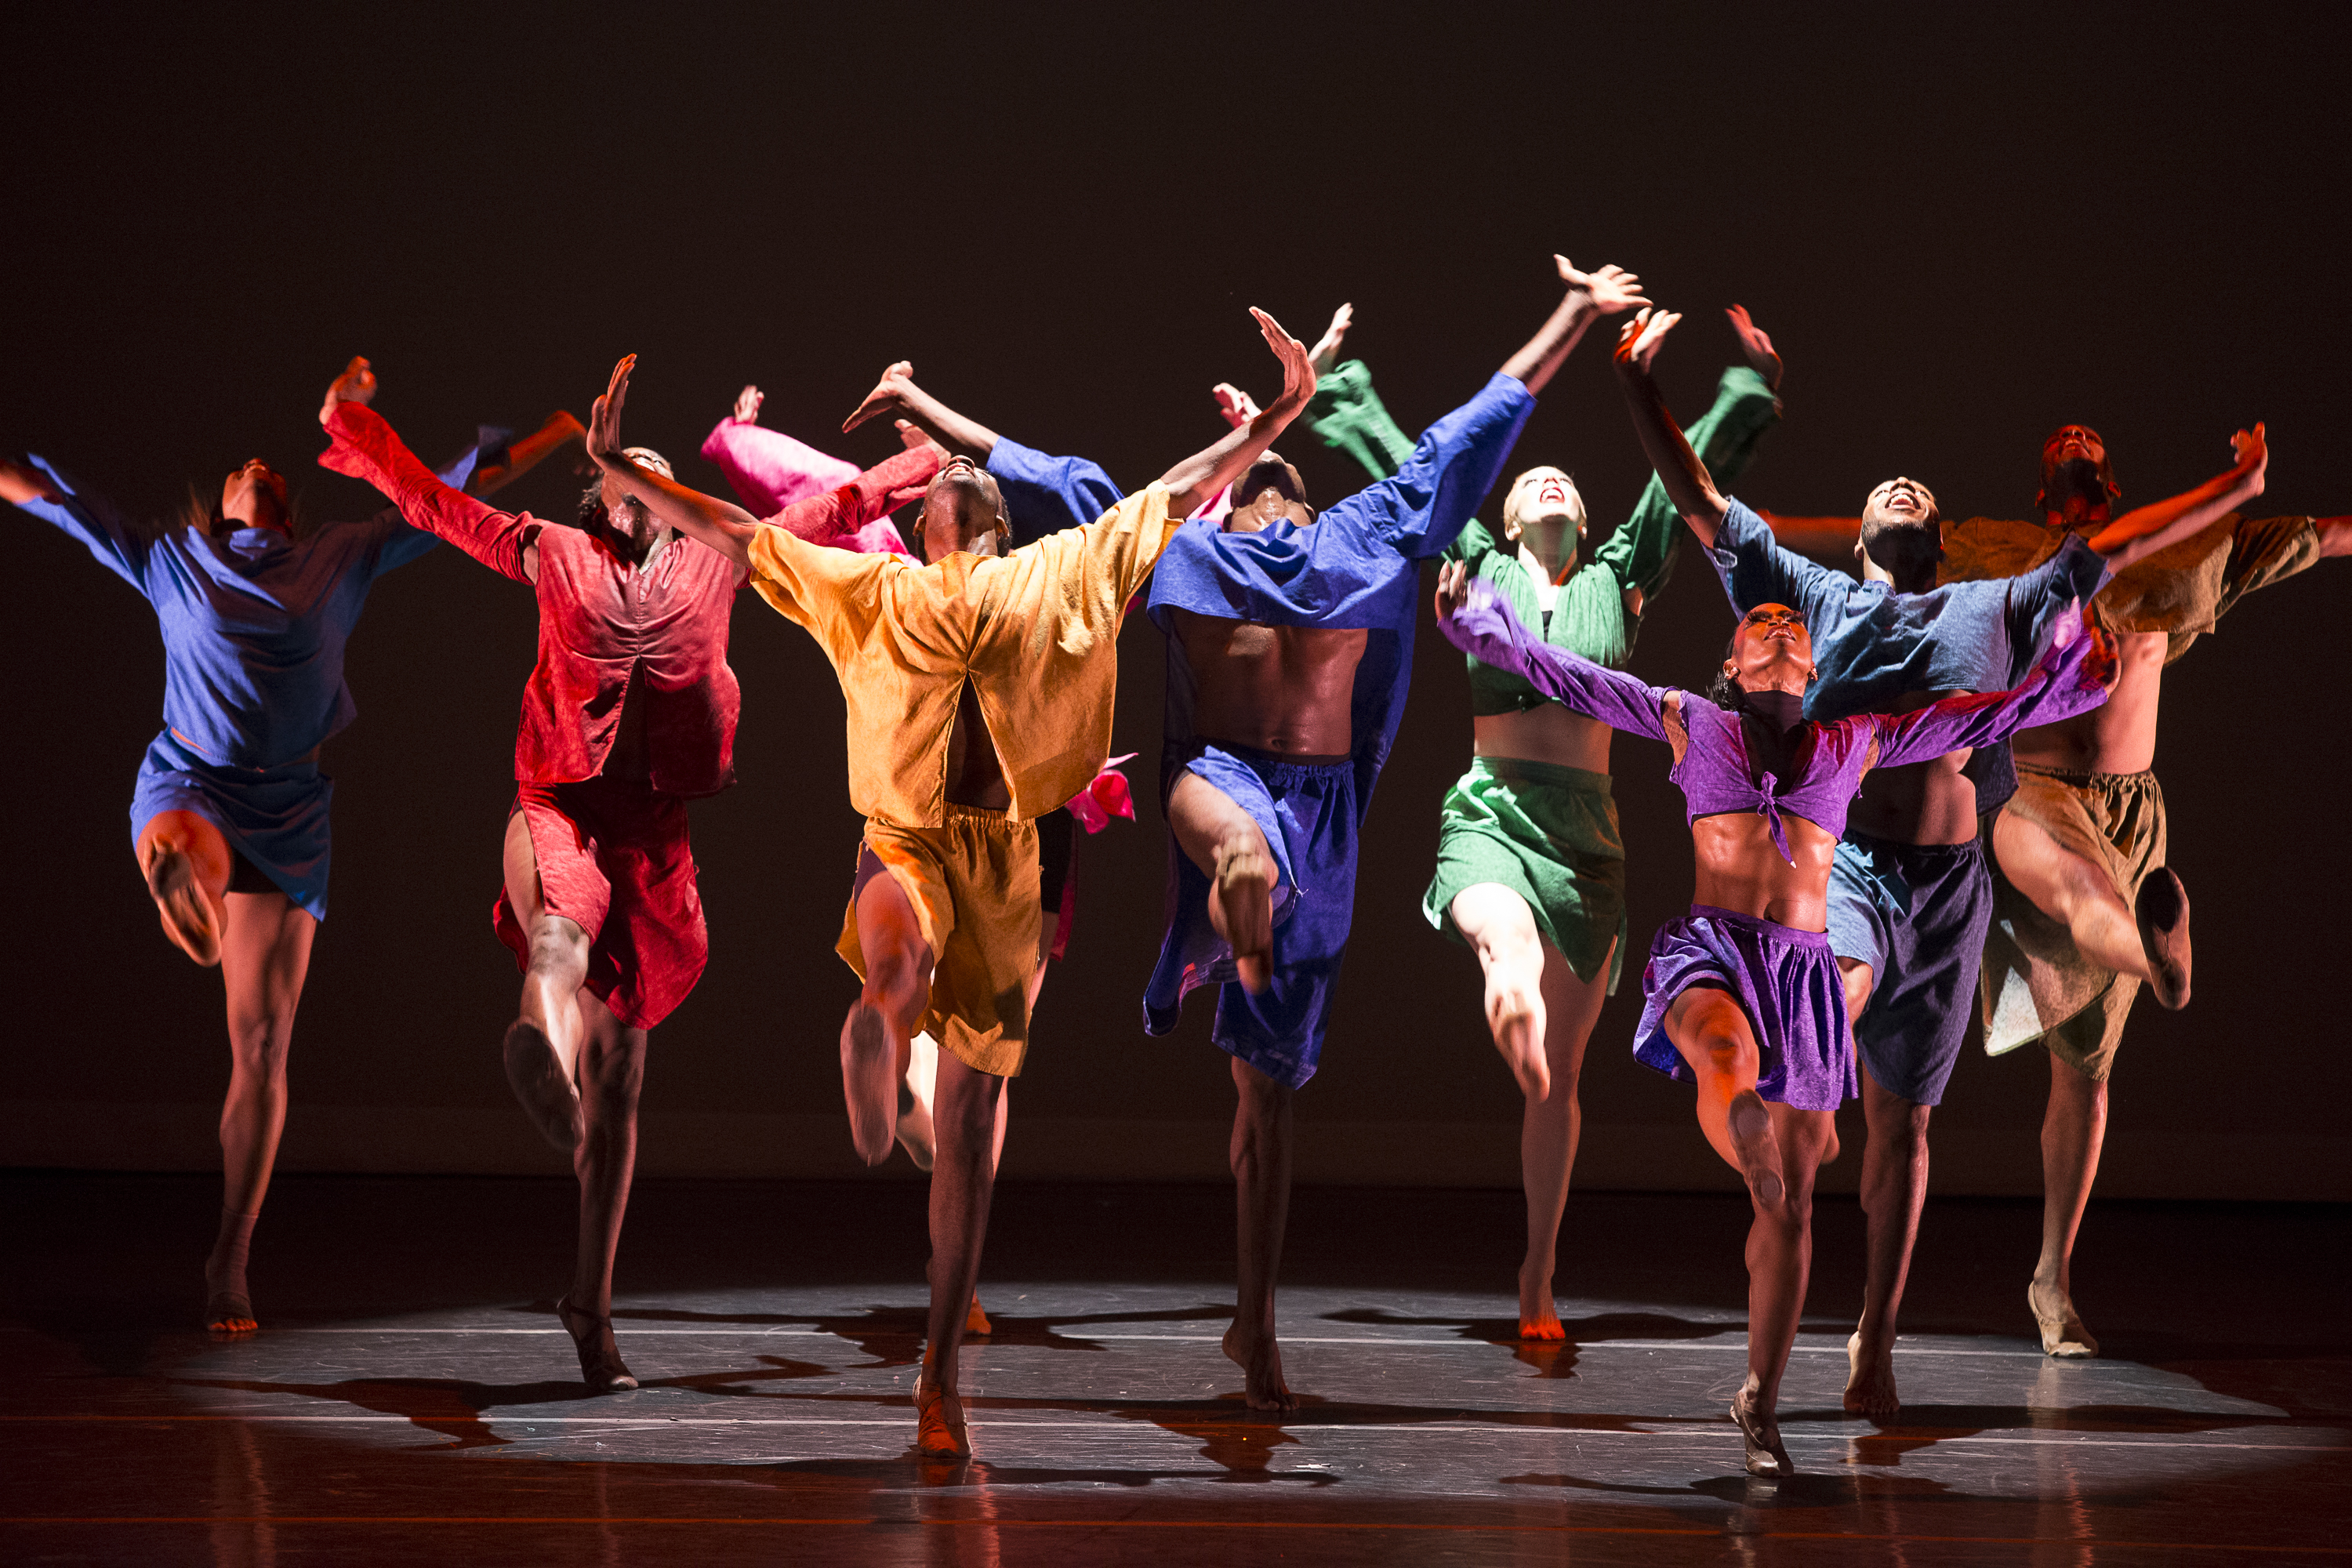 Striking Image of dancers to grab attention